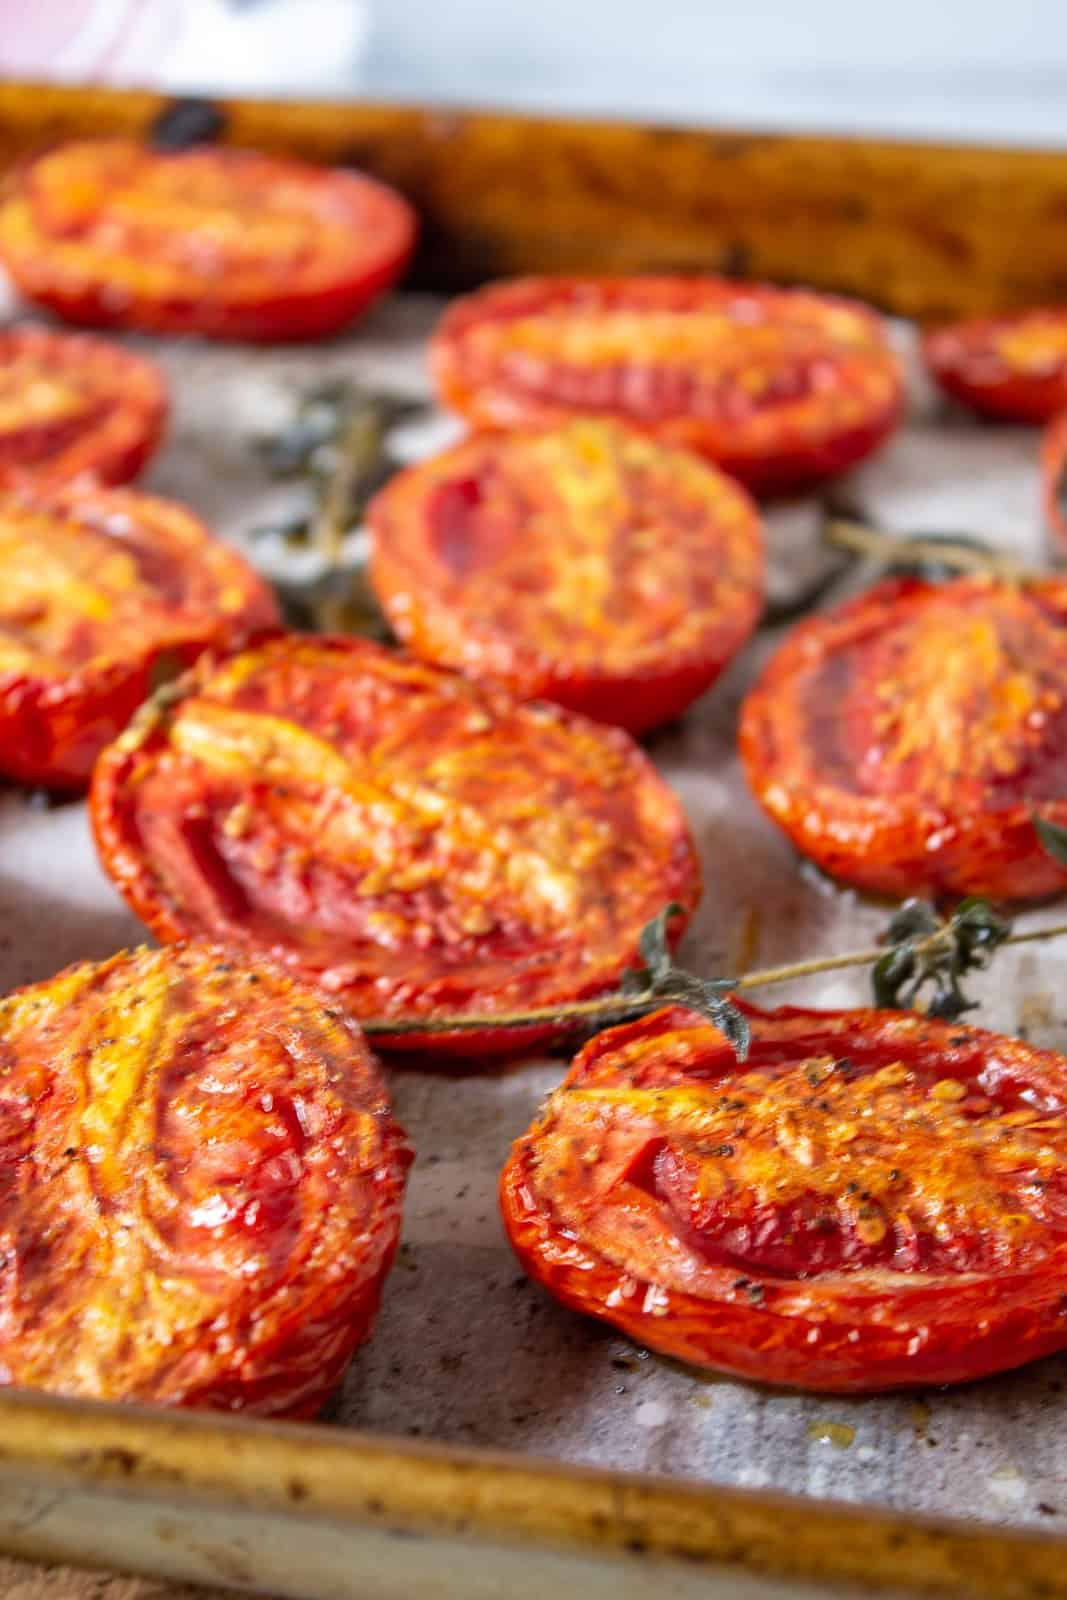 Slow roasted tomatoes on a baking sheet.